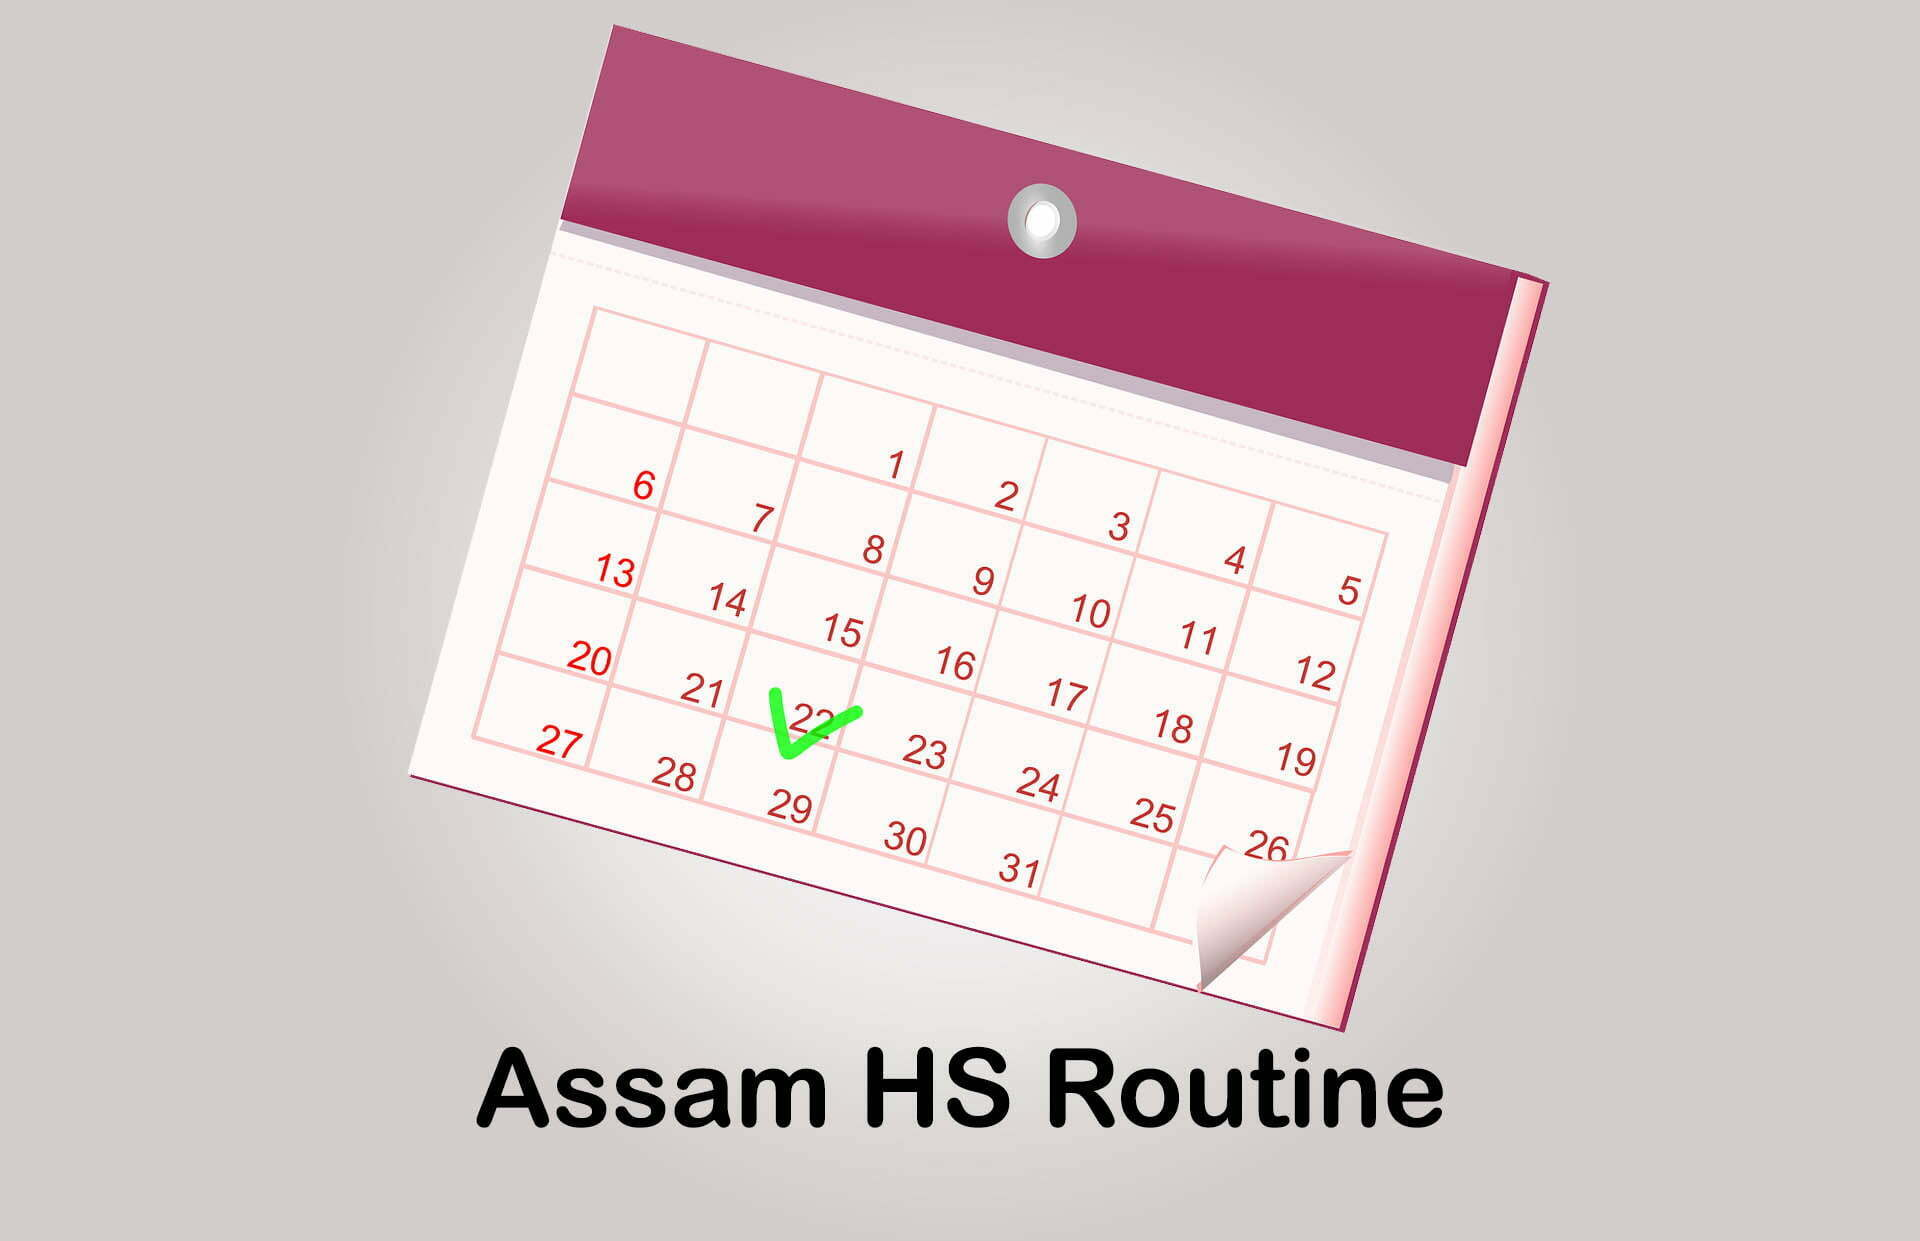 Assam HS Routine 2020 : Download Assam HS 1st & 2nd Year Routine 2020 PDF